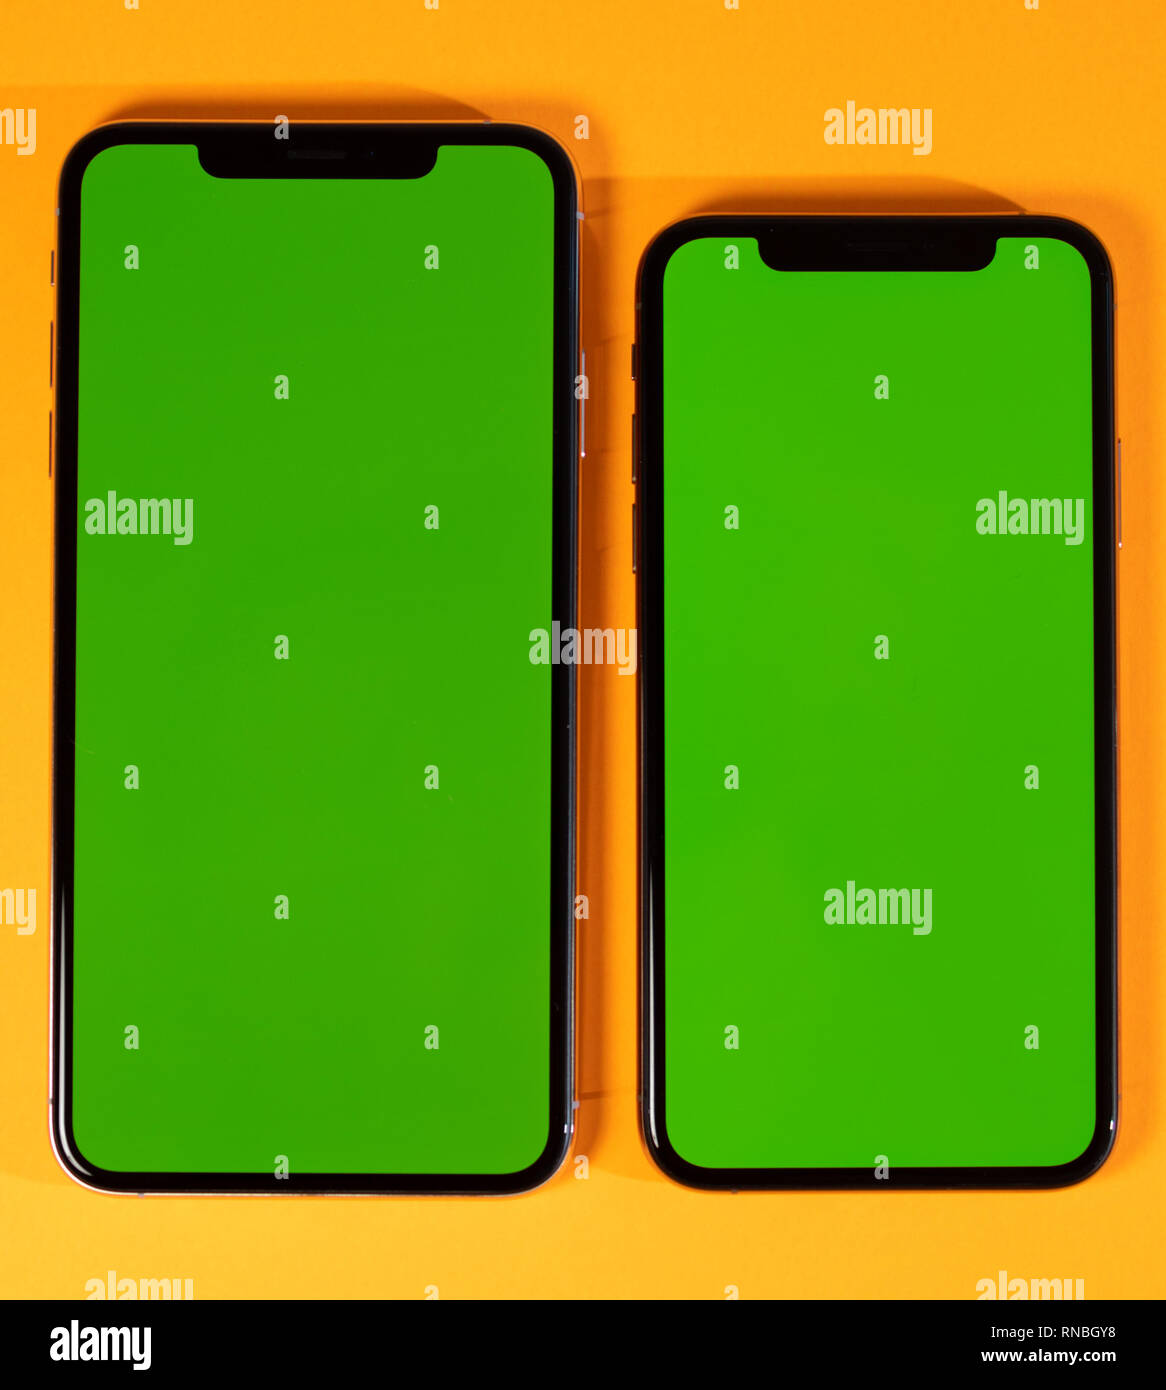 Green chroma key screen on new mobile smartphne hero object on bright glamorous modern neon pop orange background - smartphone ready to insert your app - Stock Image